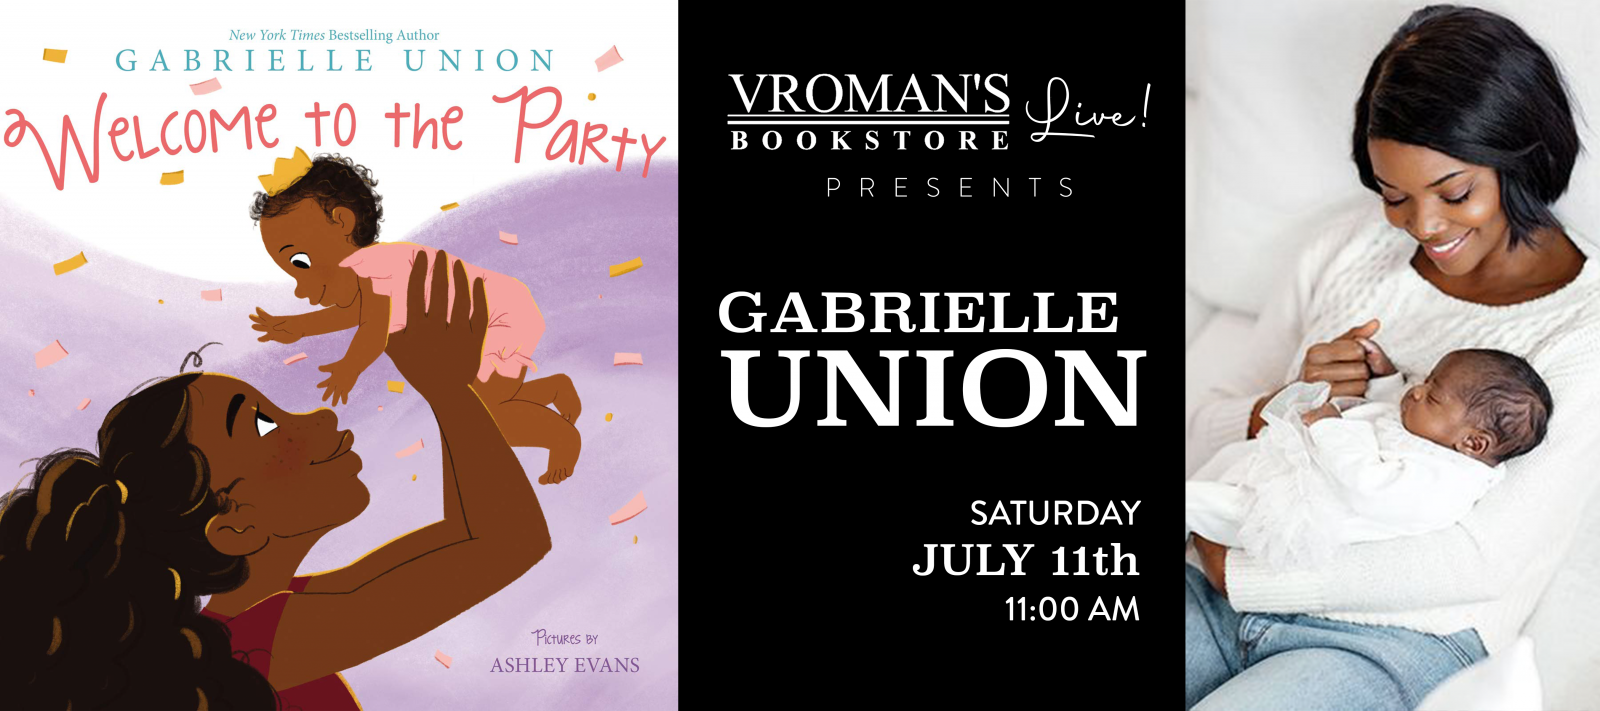 Vroman's Live presents Gabrielle Union on Saturday July 11 at 11am